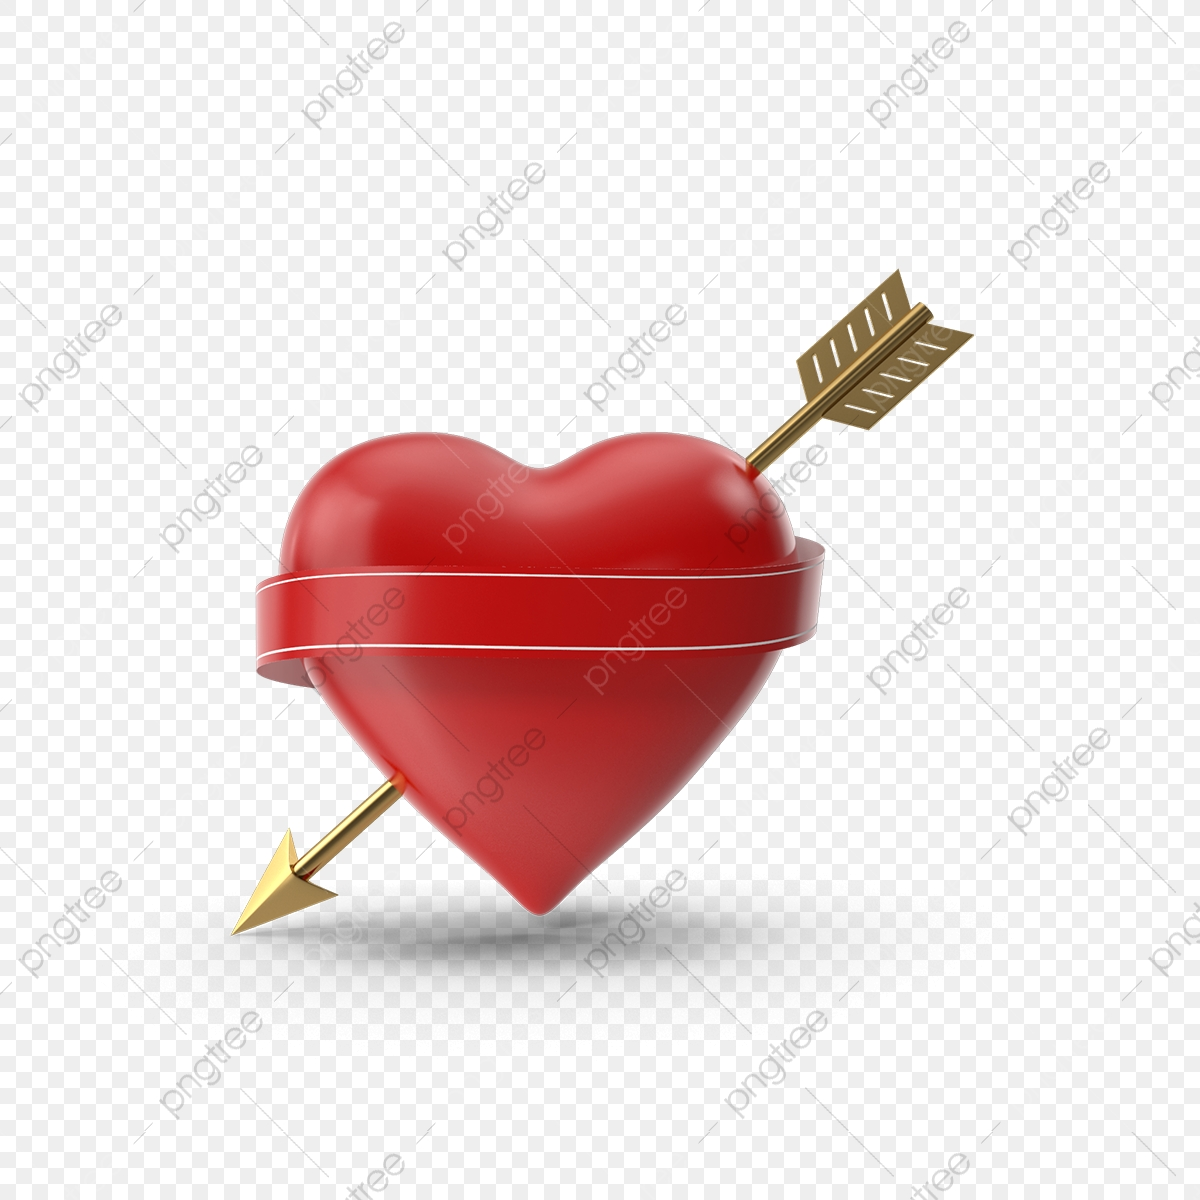 3d Heart With Arrow And Banner, 3d, Heart, Red PNG Transparent.